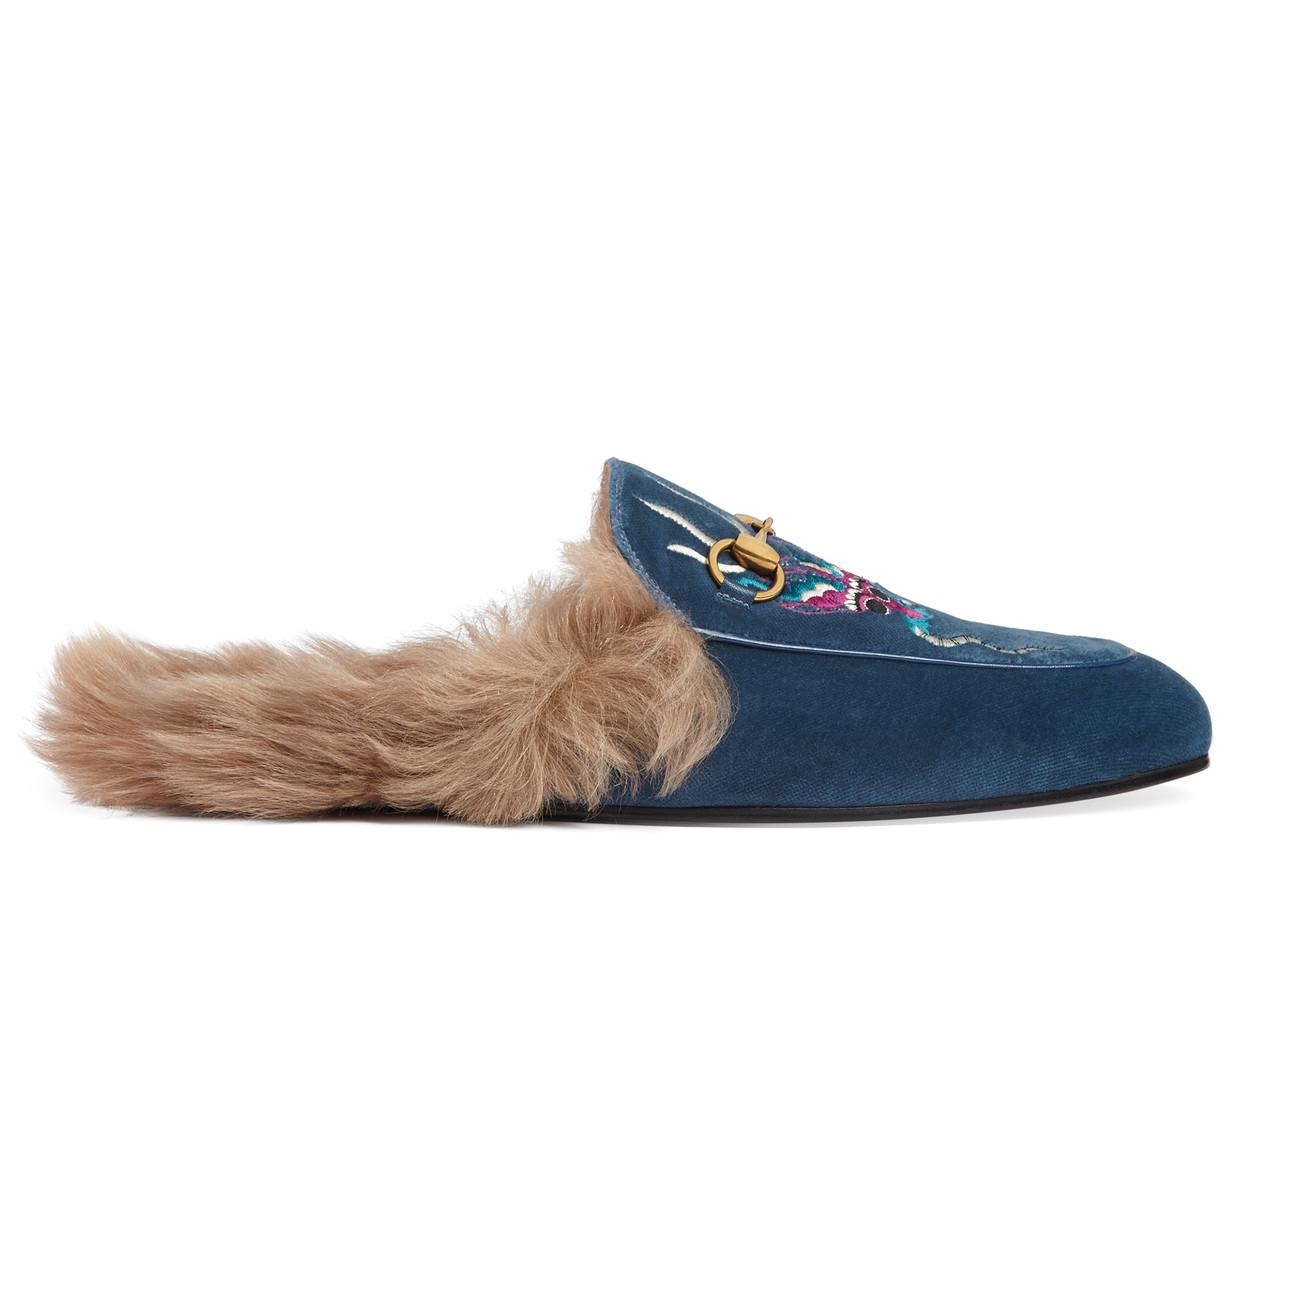 11a9c6d6f Gucci Princetown Velvet Embroidered Slipper in Blue for Men - Lyst